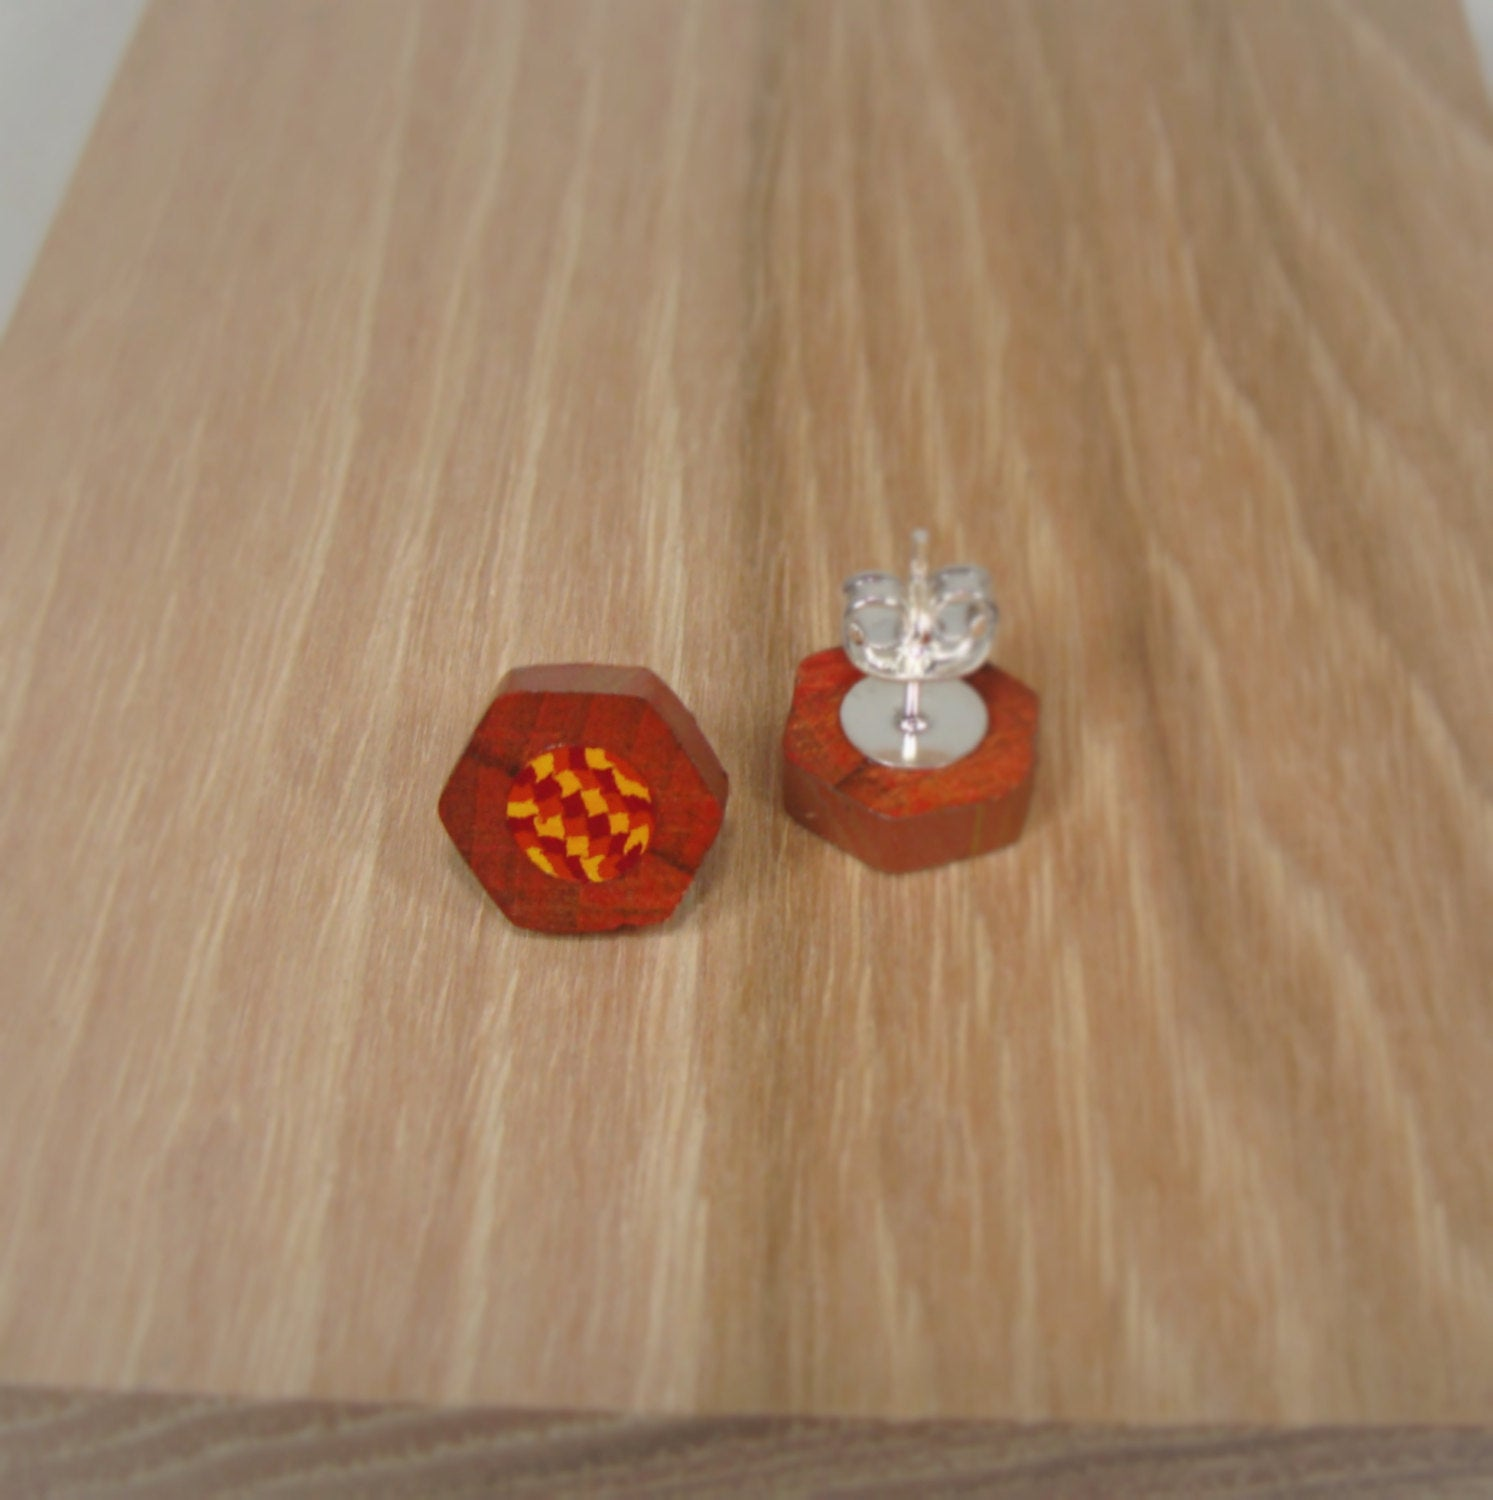 Colored Pencil Stud Earrings - Red Orange Yellow - Art and Soule